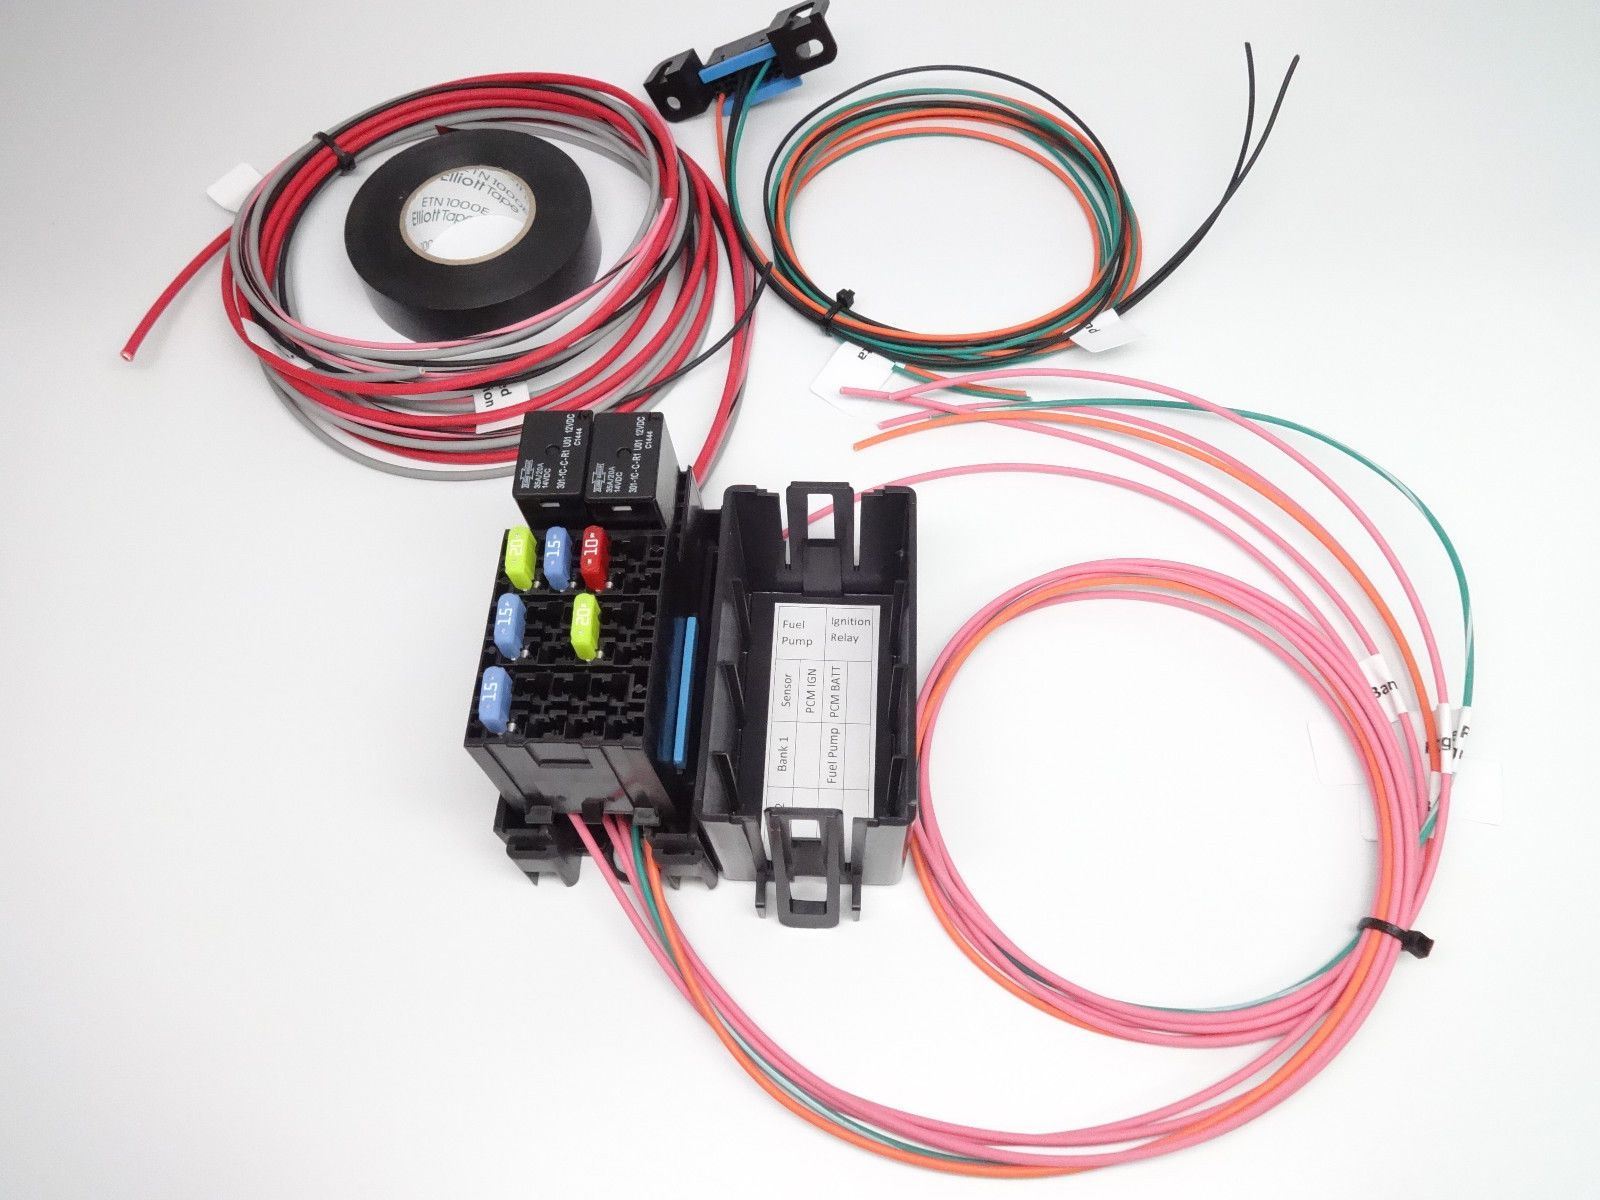 A9l Wiring Harness For Diy Free Diagram You Lq4 Swap Homemade Ltx Lsx Vortec Conversion Fuse Panel And Relay Block House Motorsport